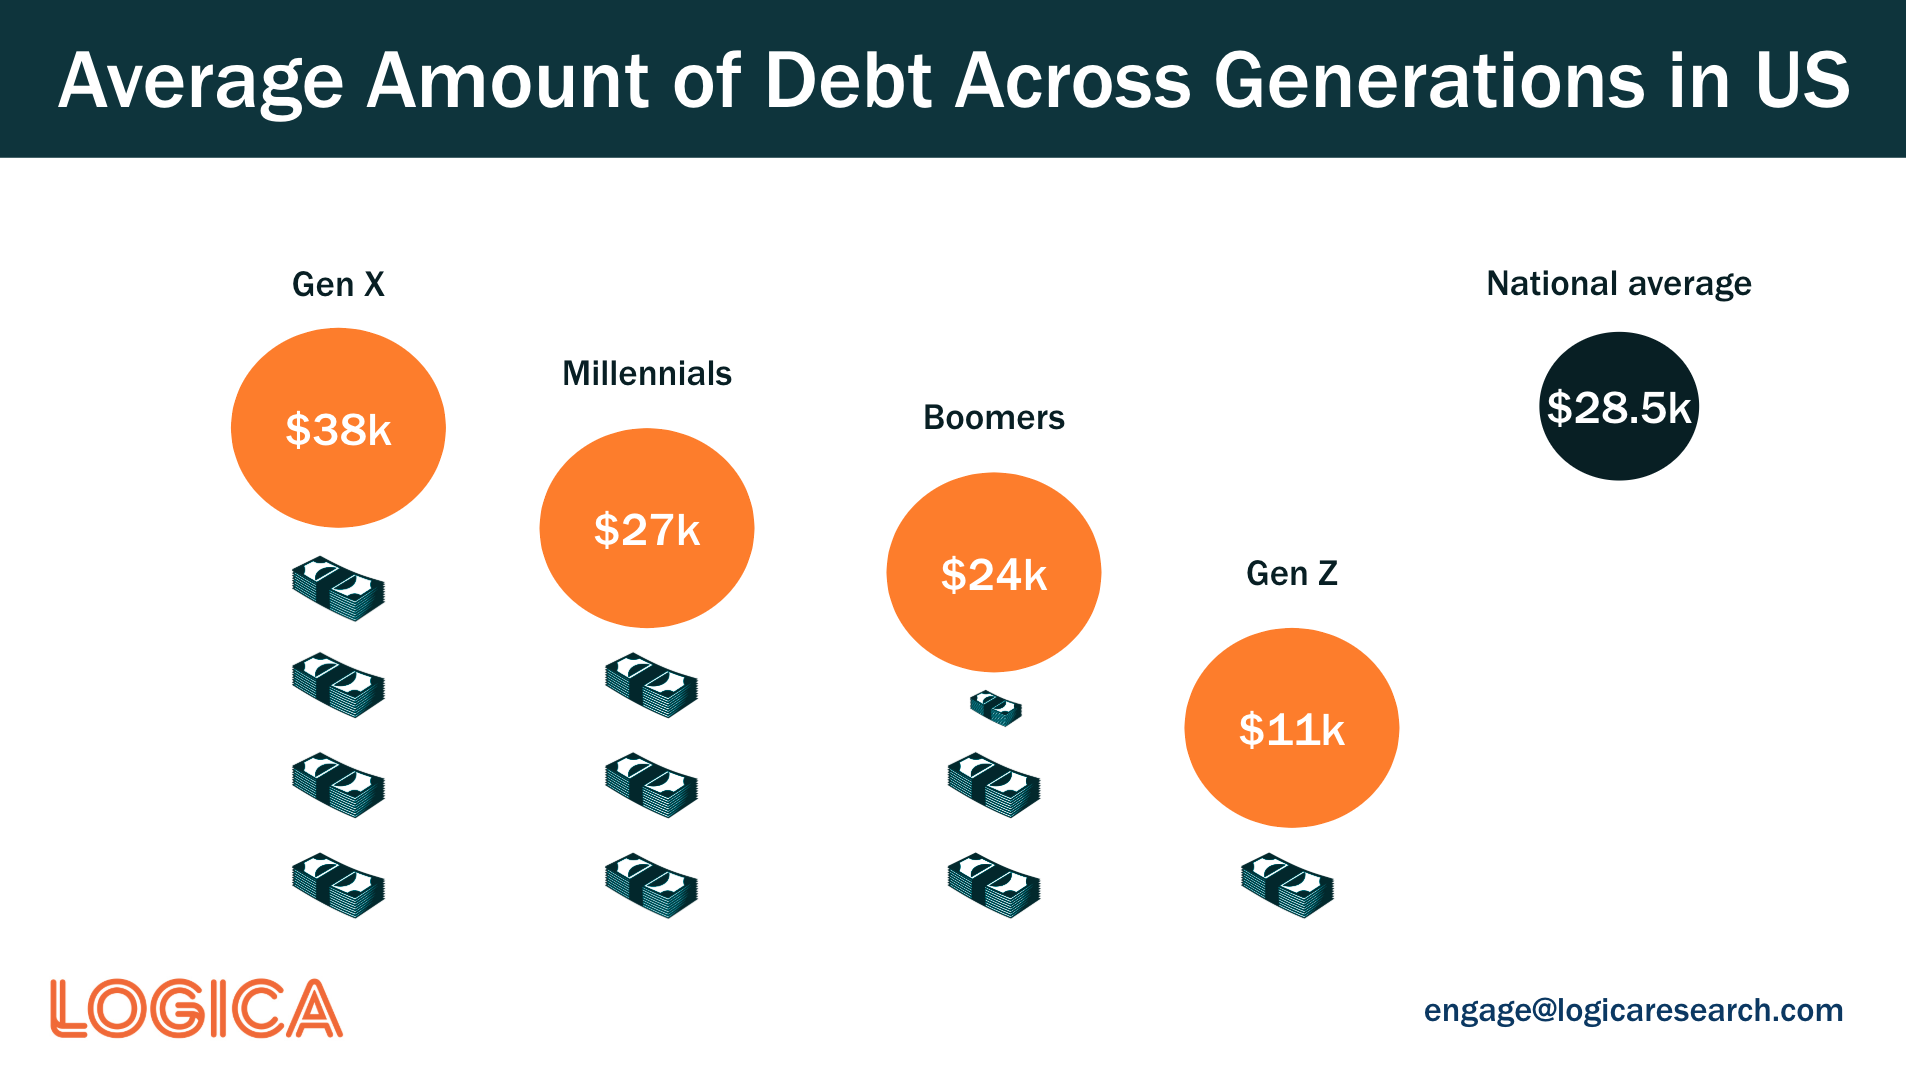 Average amount of debt across generations in the US including Gen X, Millennials, Boomers, and Generation Z.